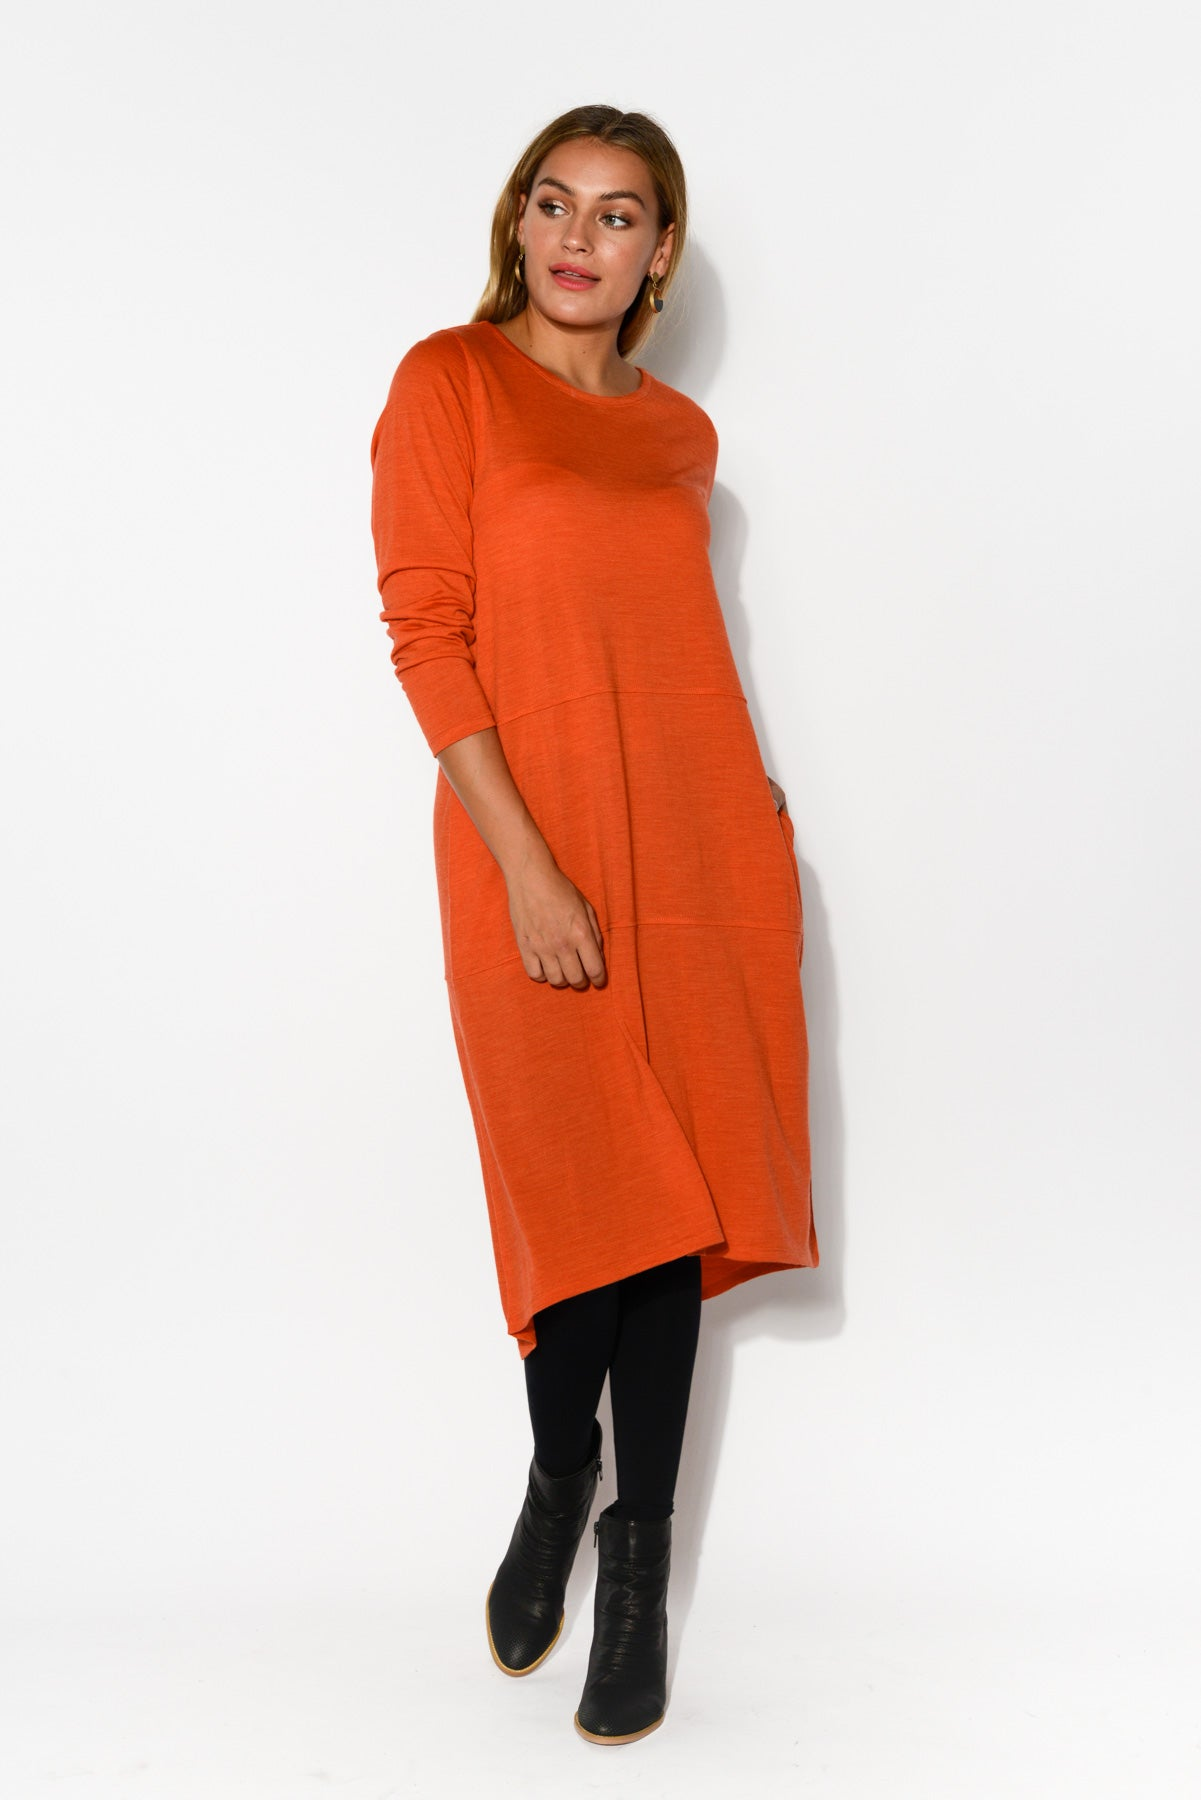 Elizabeth Orange Merino Wool Dress - Blue Bungalow